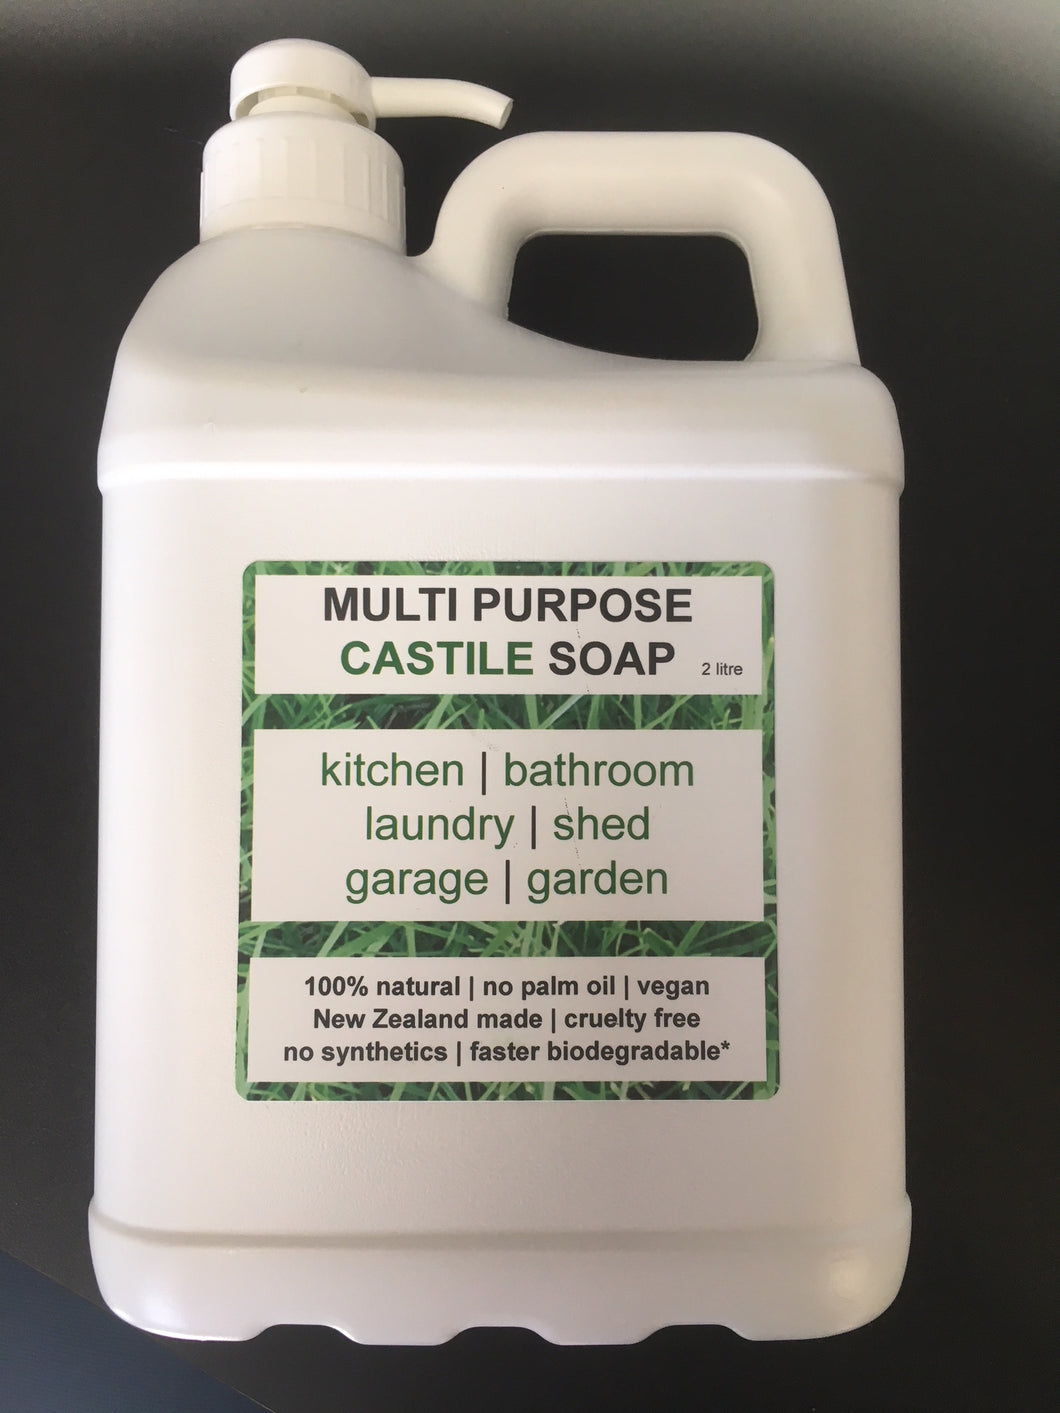 eco-castile - multi purpose castile soap